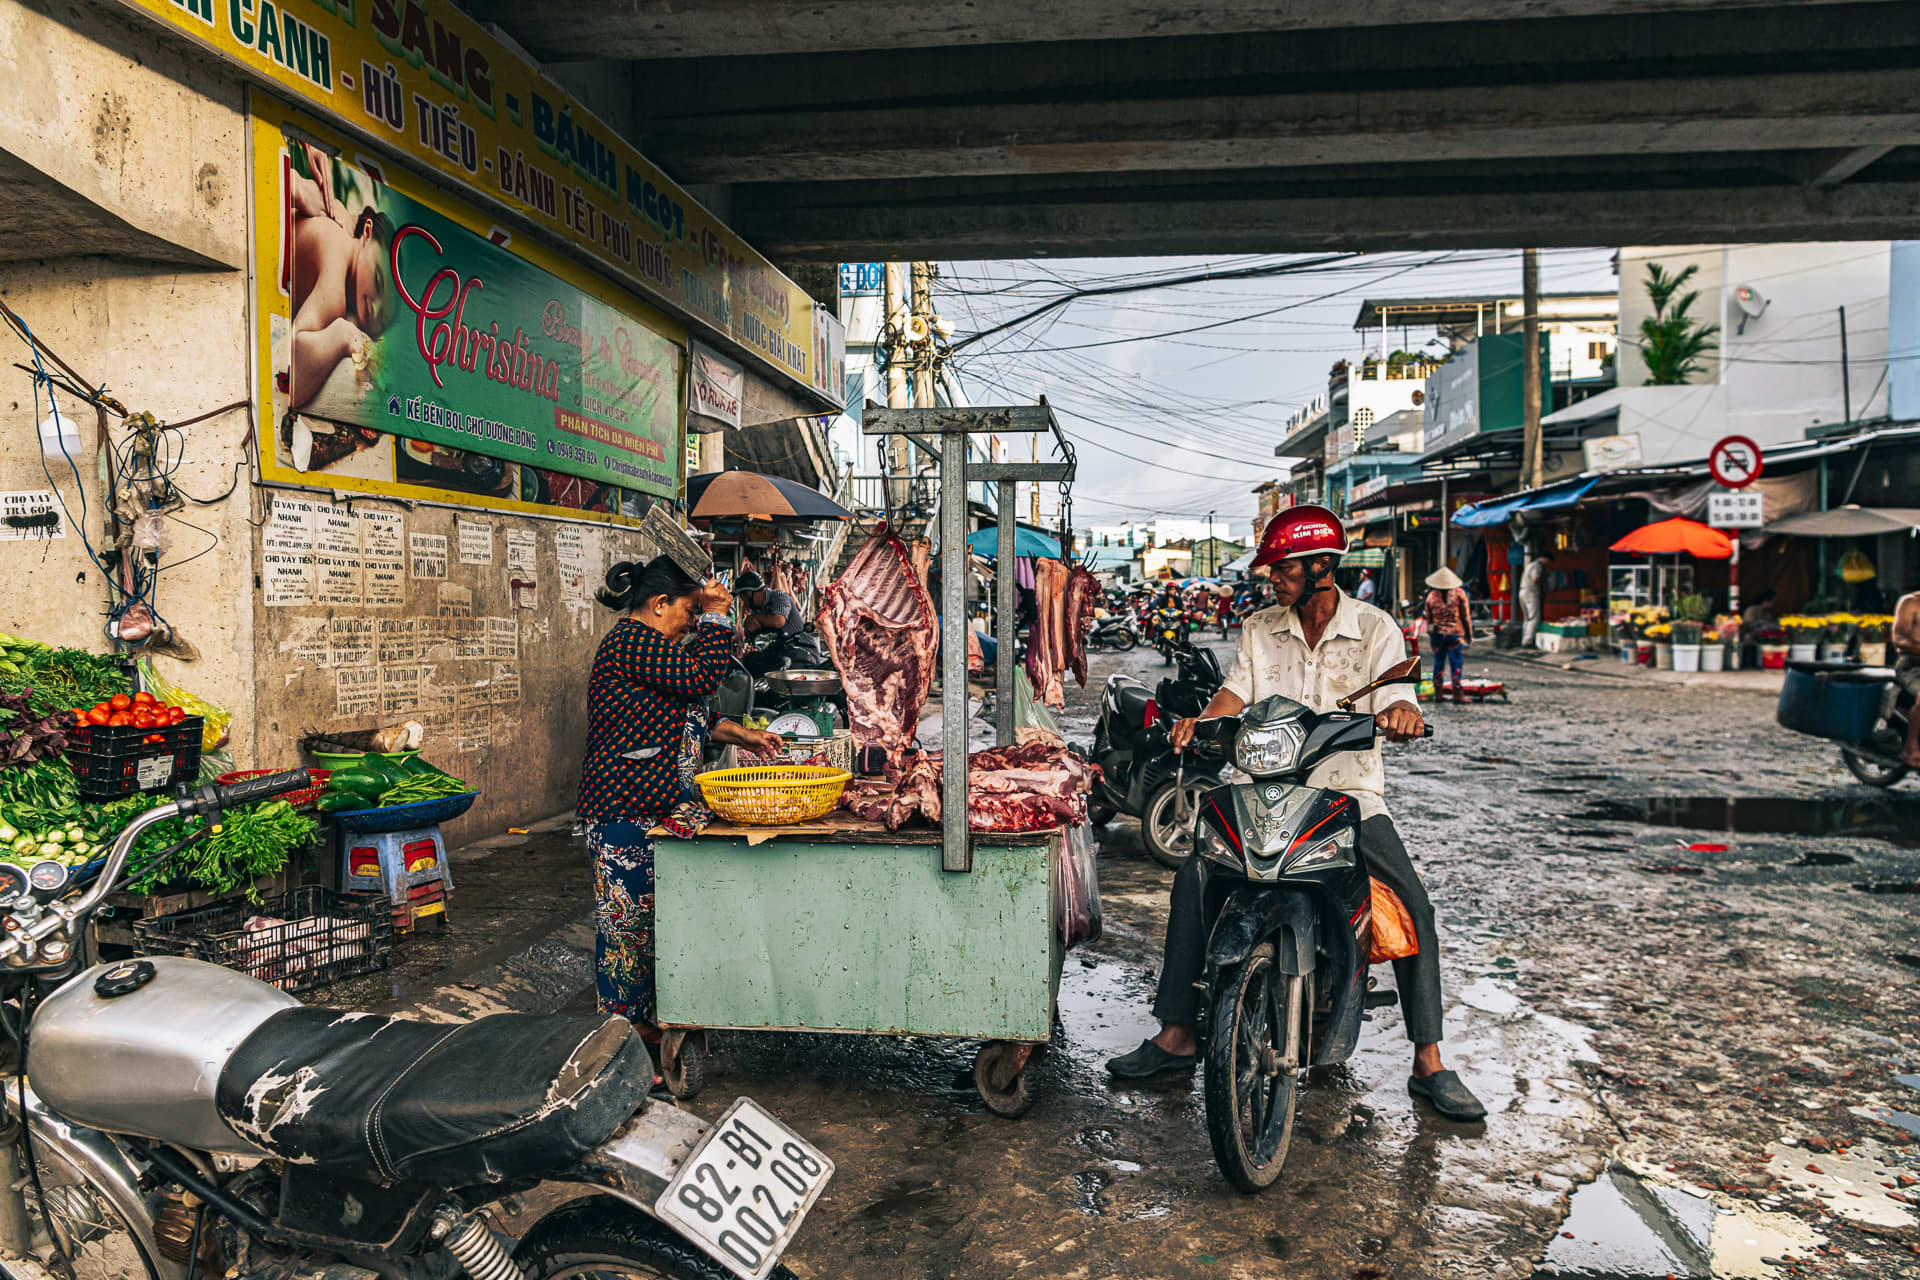 A butcher preparing a cut of meat while a customer waits on his motorbike at the Duong Dong market.